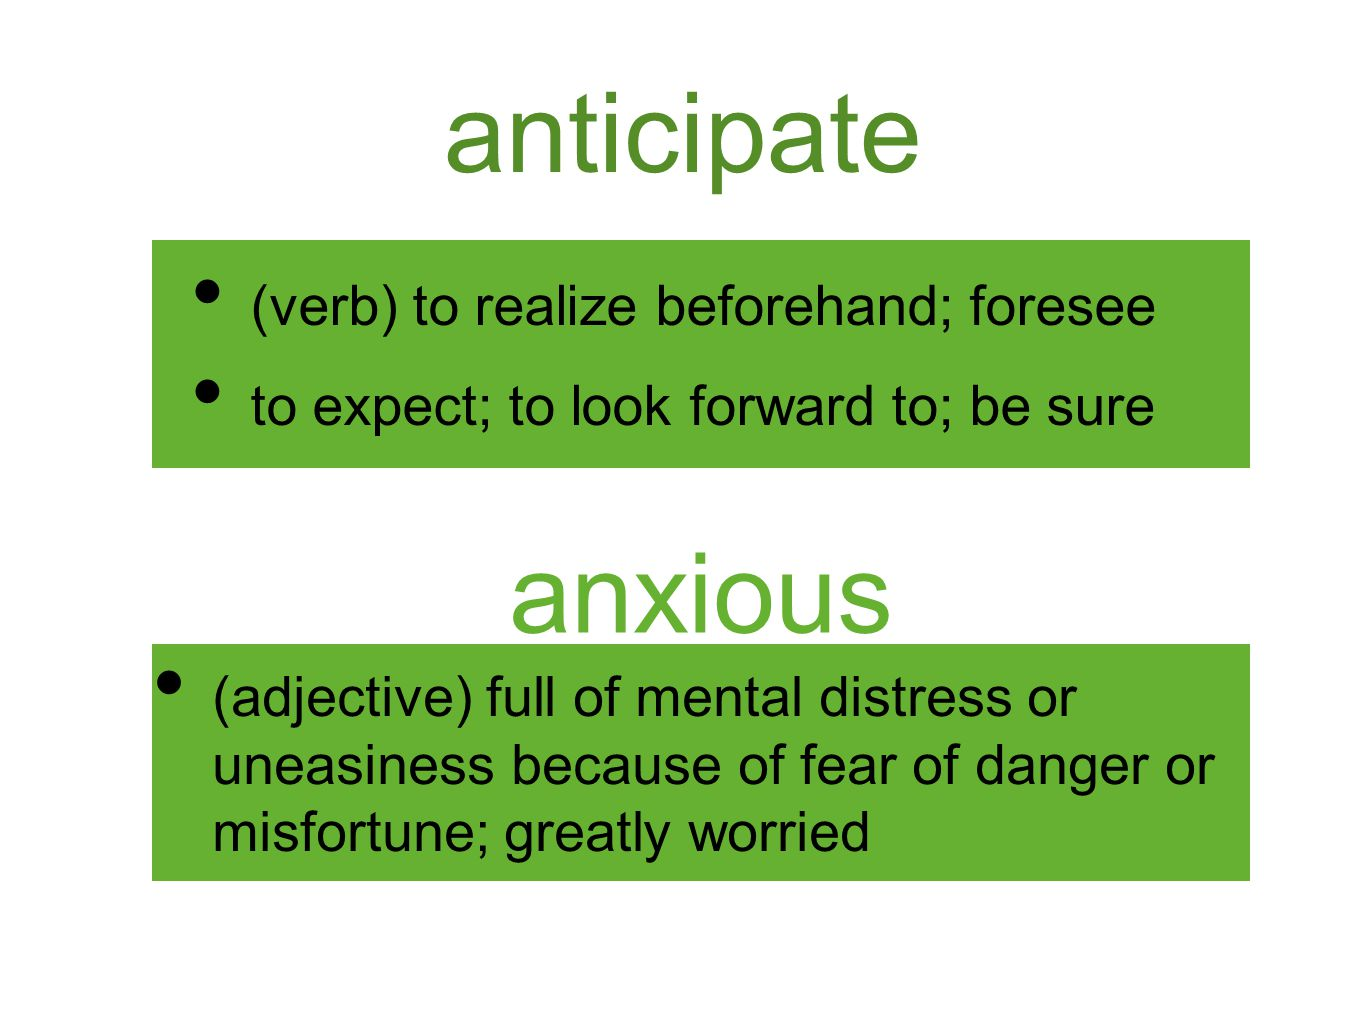 anticipate (verb) to realize beforehand; foresee to expect; to look forward to; be sure anxious (adjective) full of mental distress or uneasiness beca